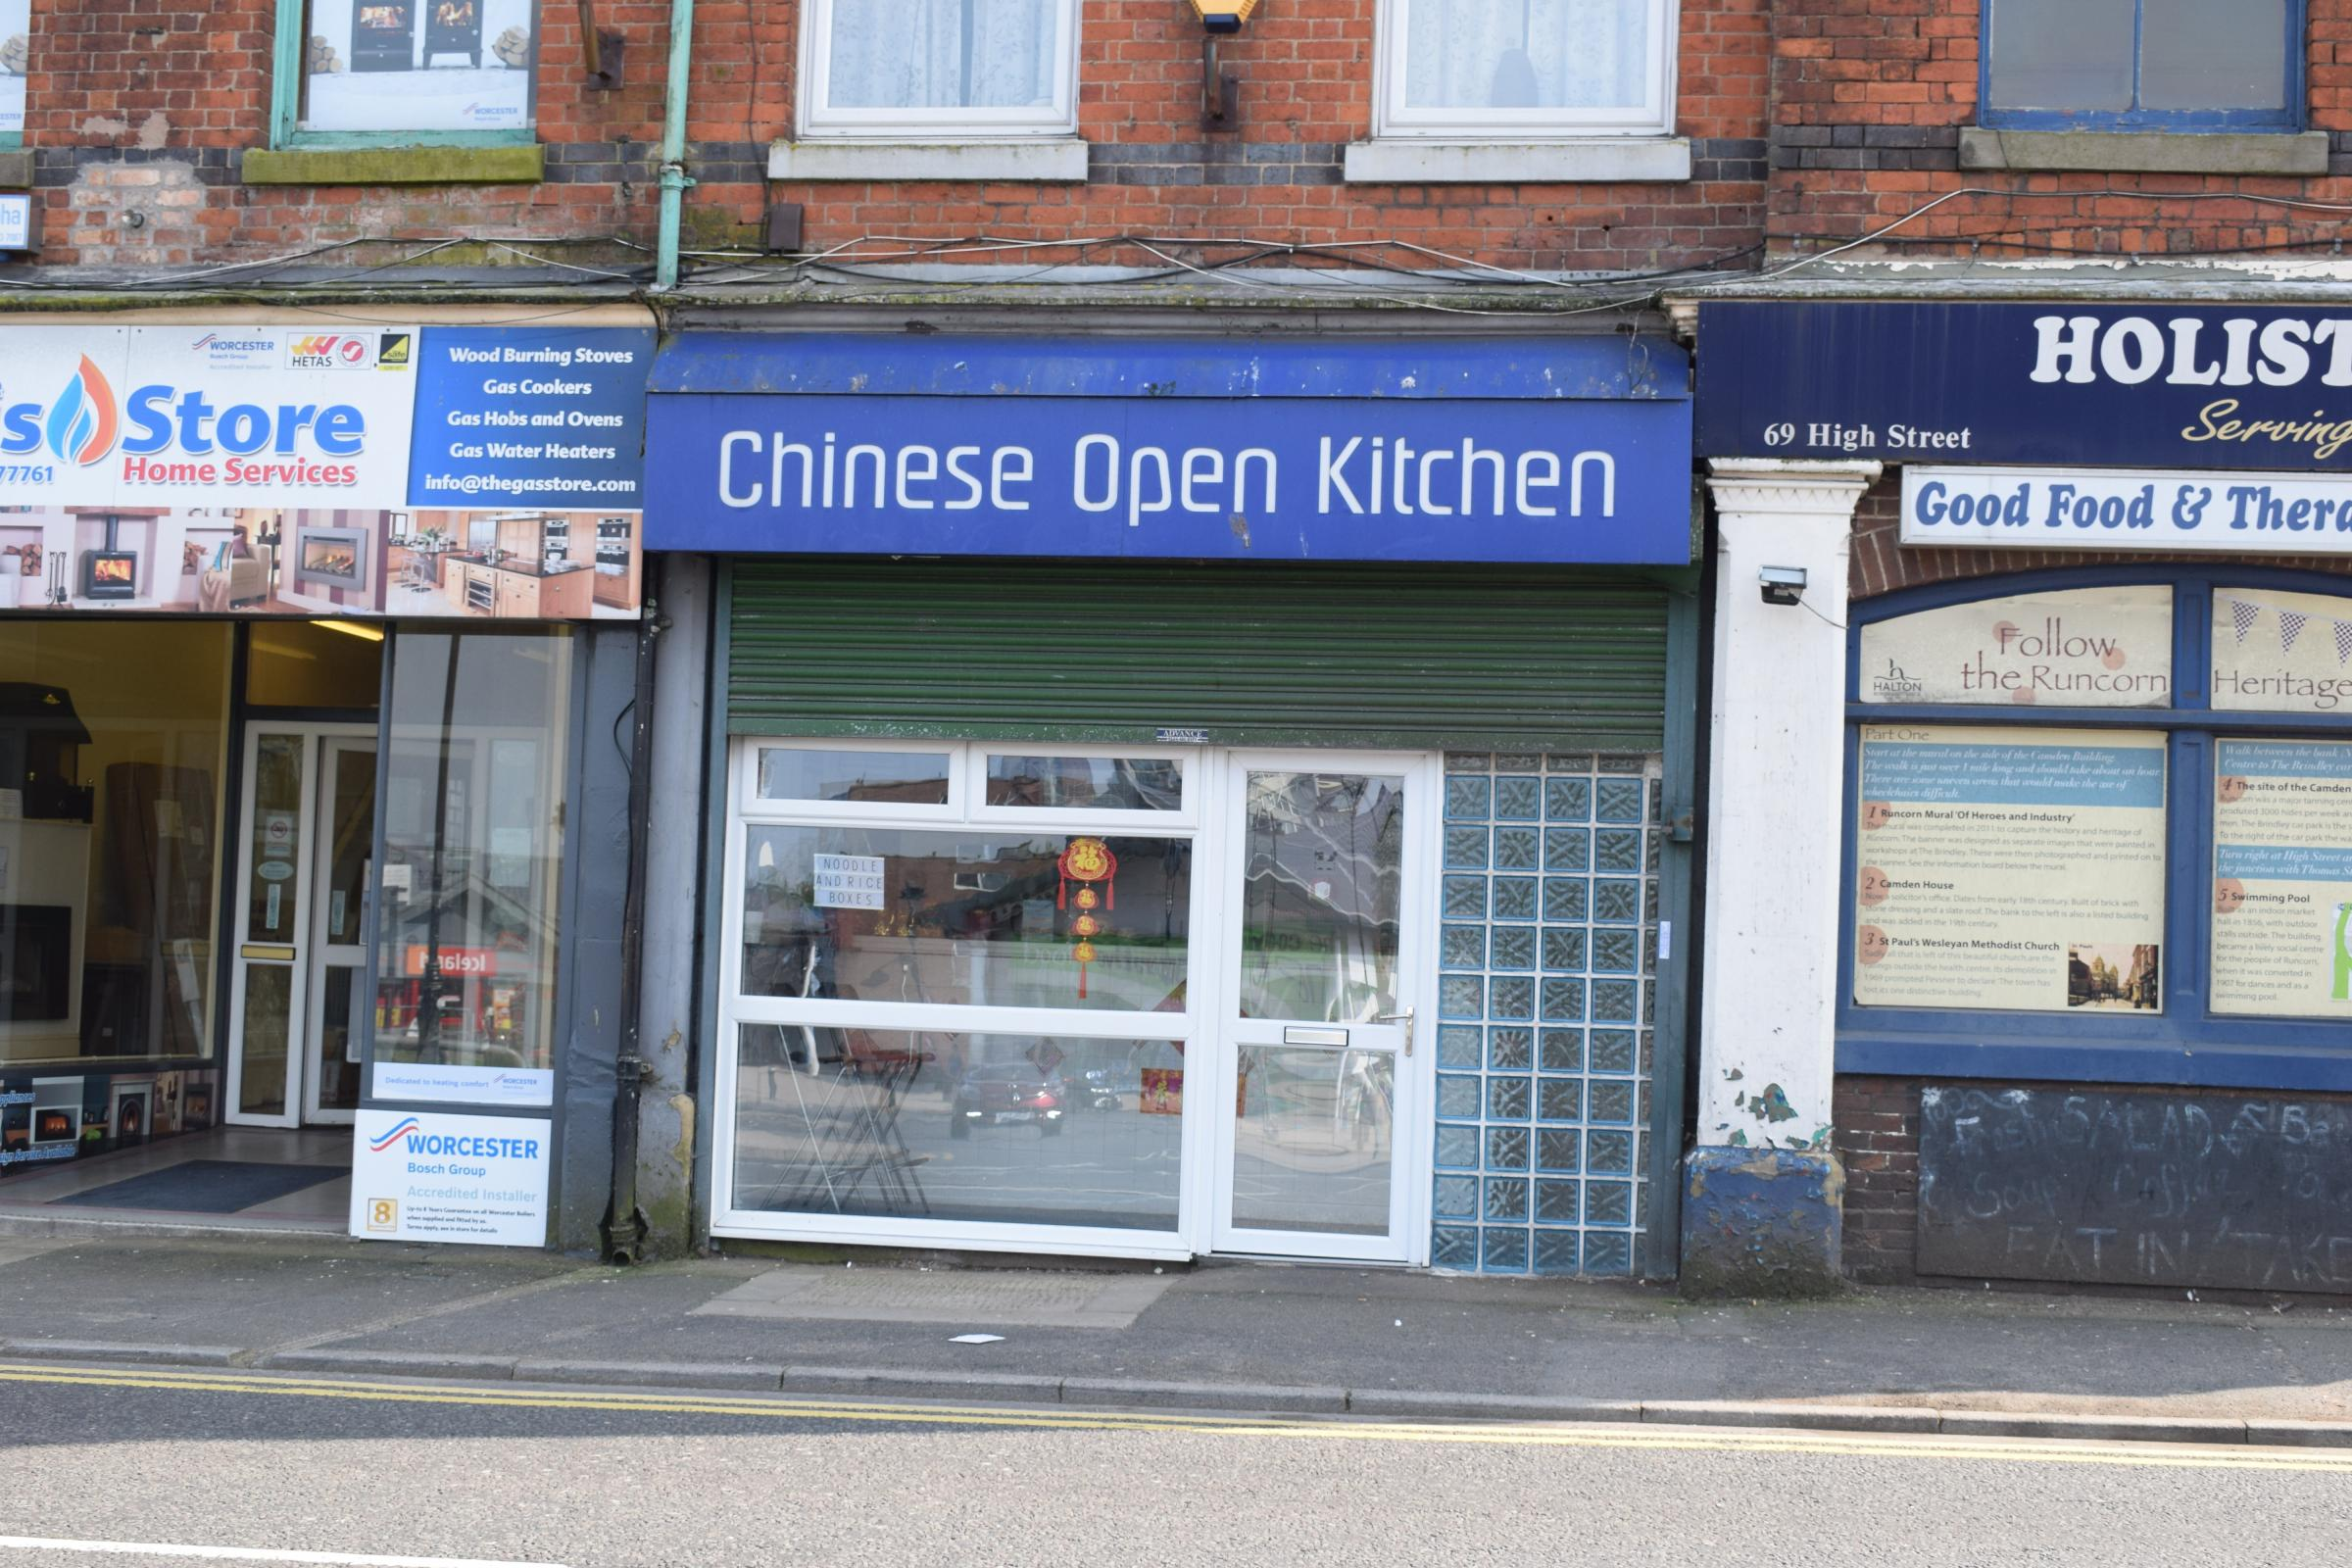 Existing takeaways and takeaway shop fronts\'- Runcorn Old Town